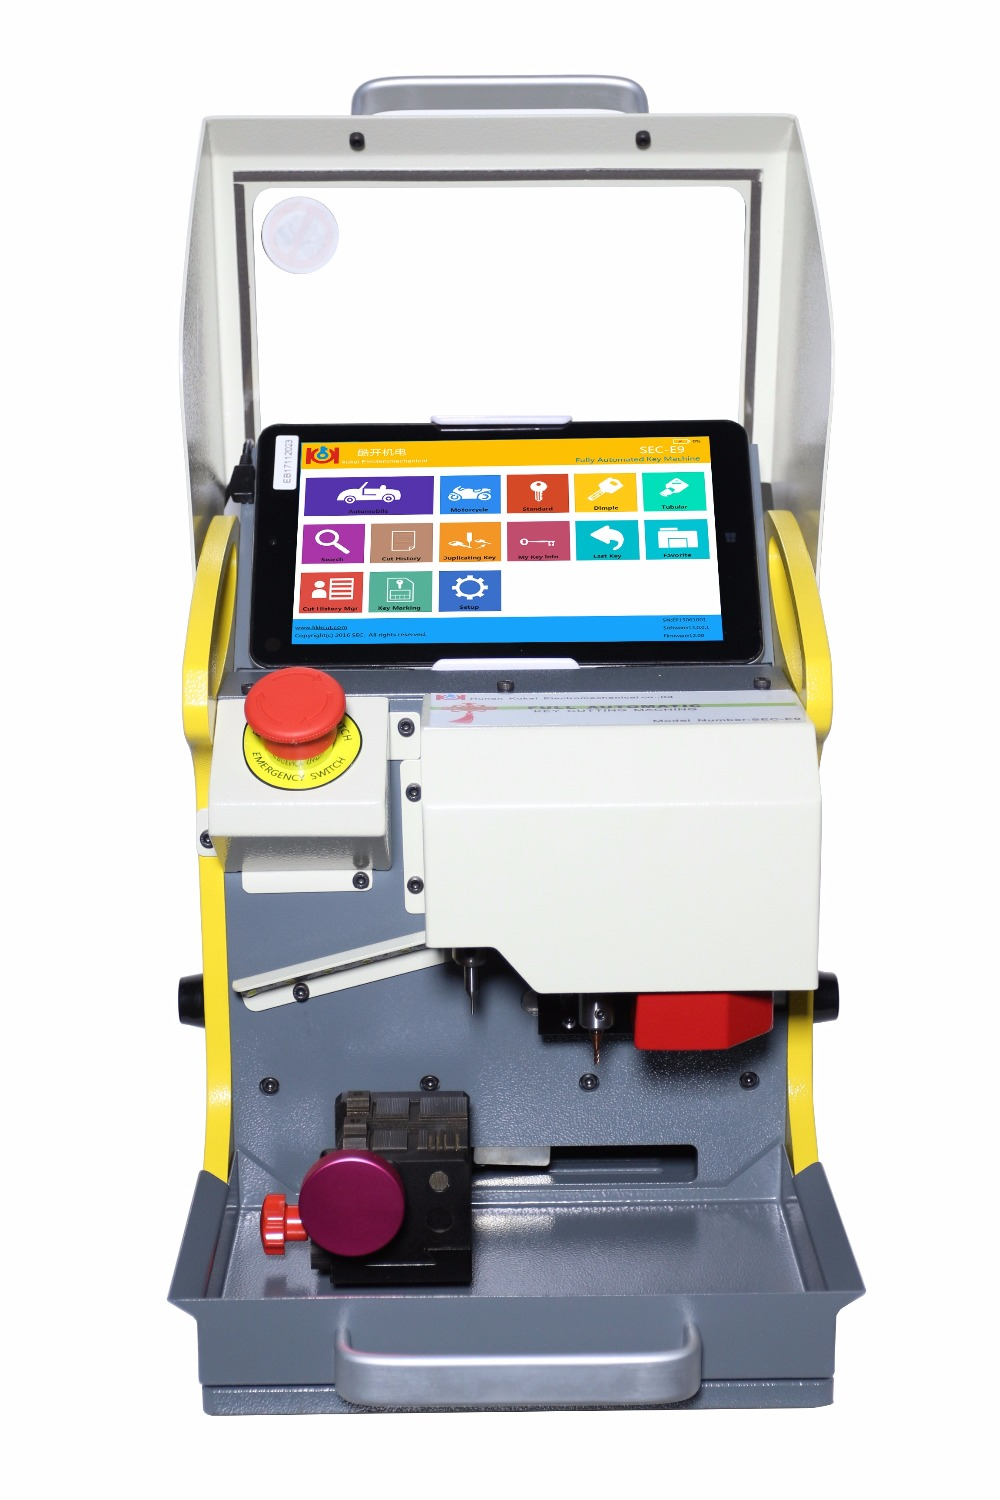 New 8 3 Inch Automatic Key Cutting Machine Sec E9 Portable